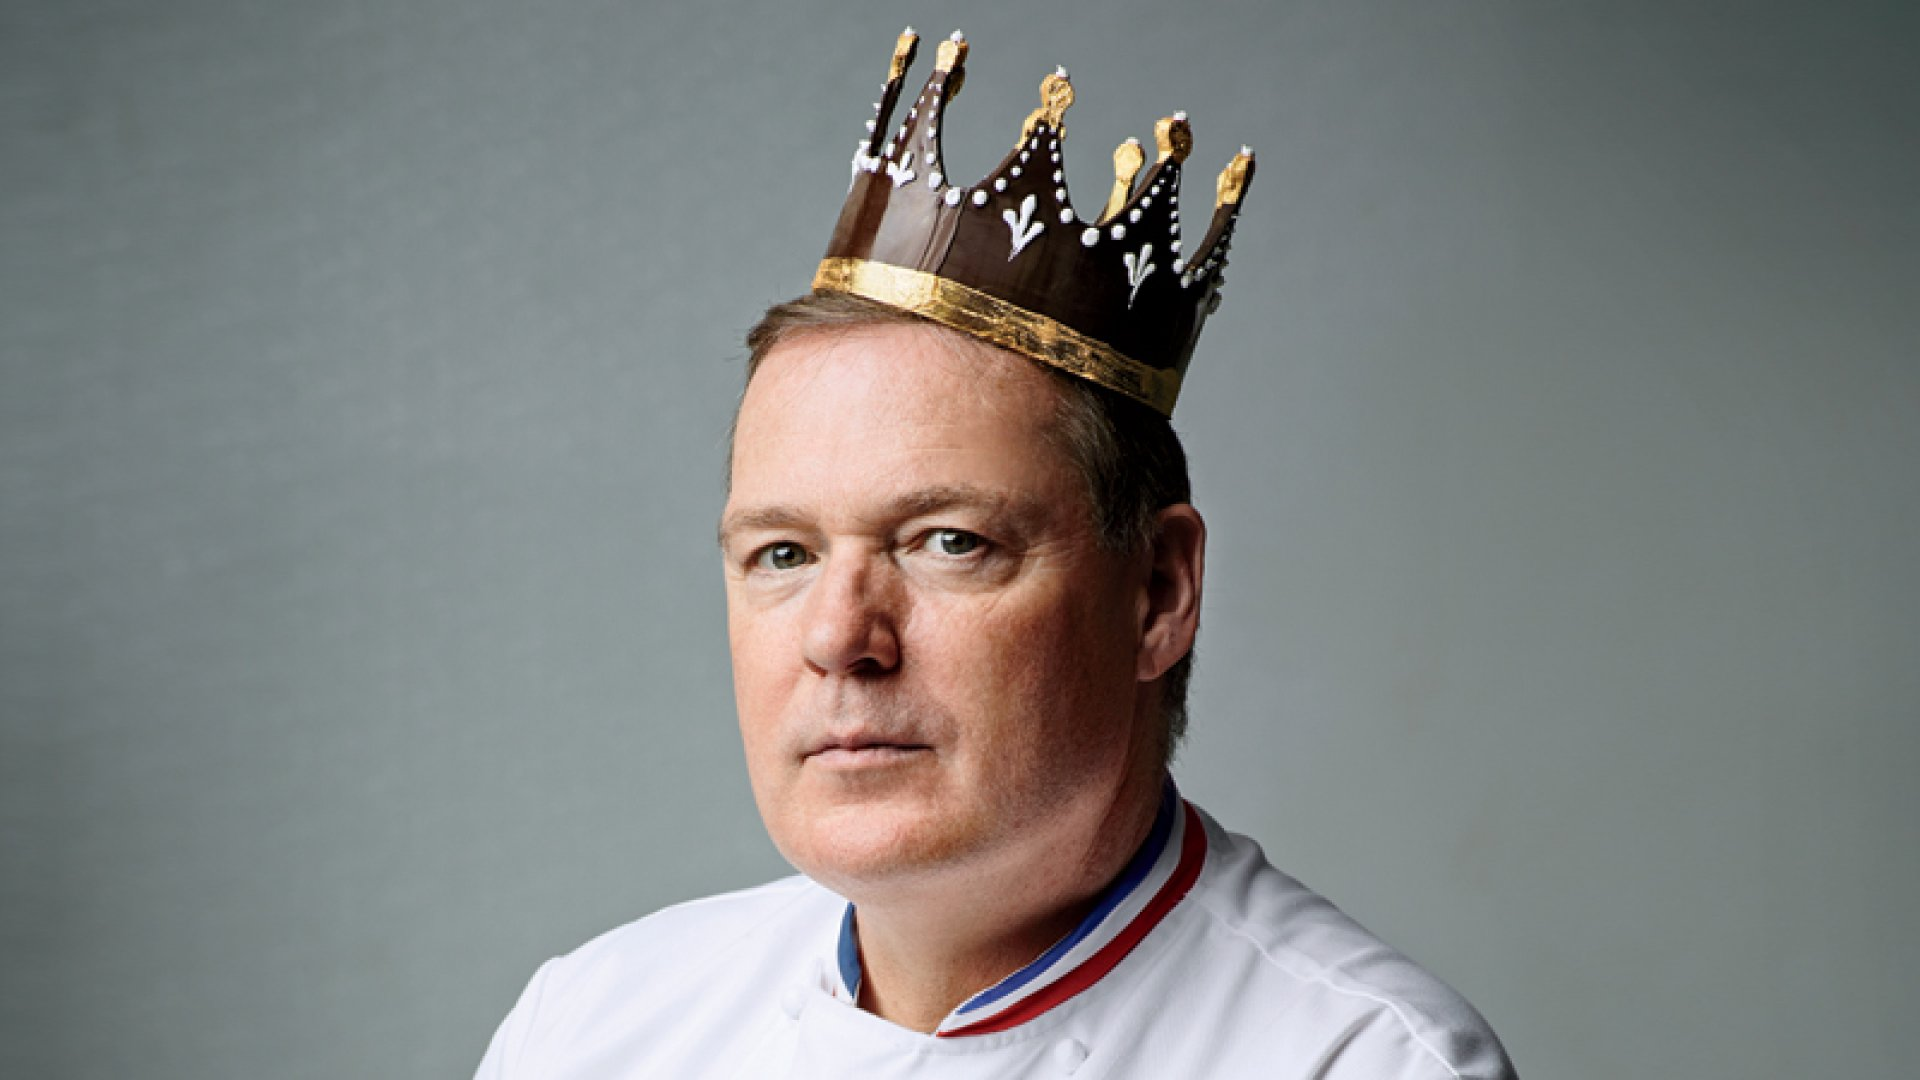 How Jacques Torres Became the Chocolate King of New York